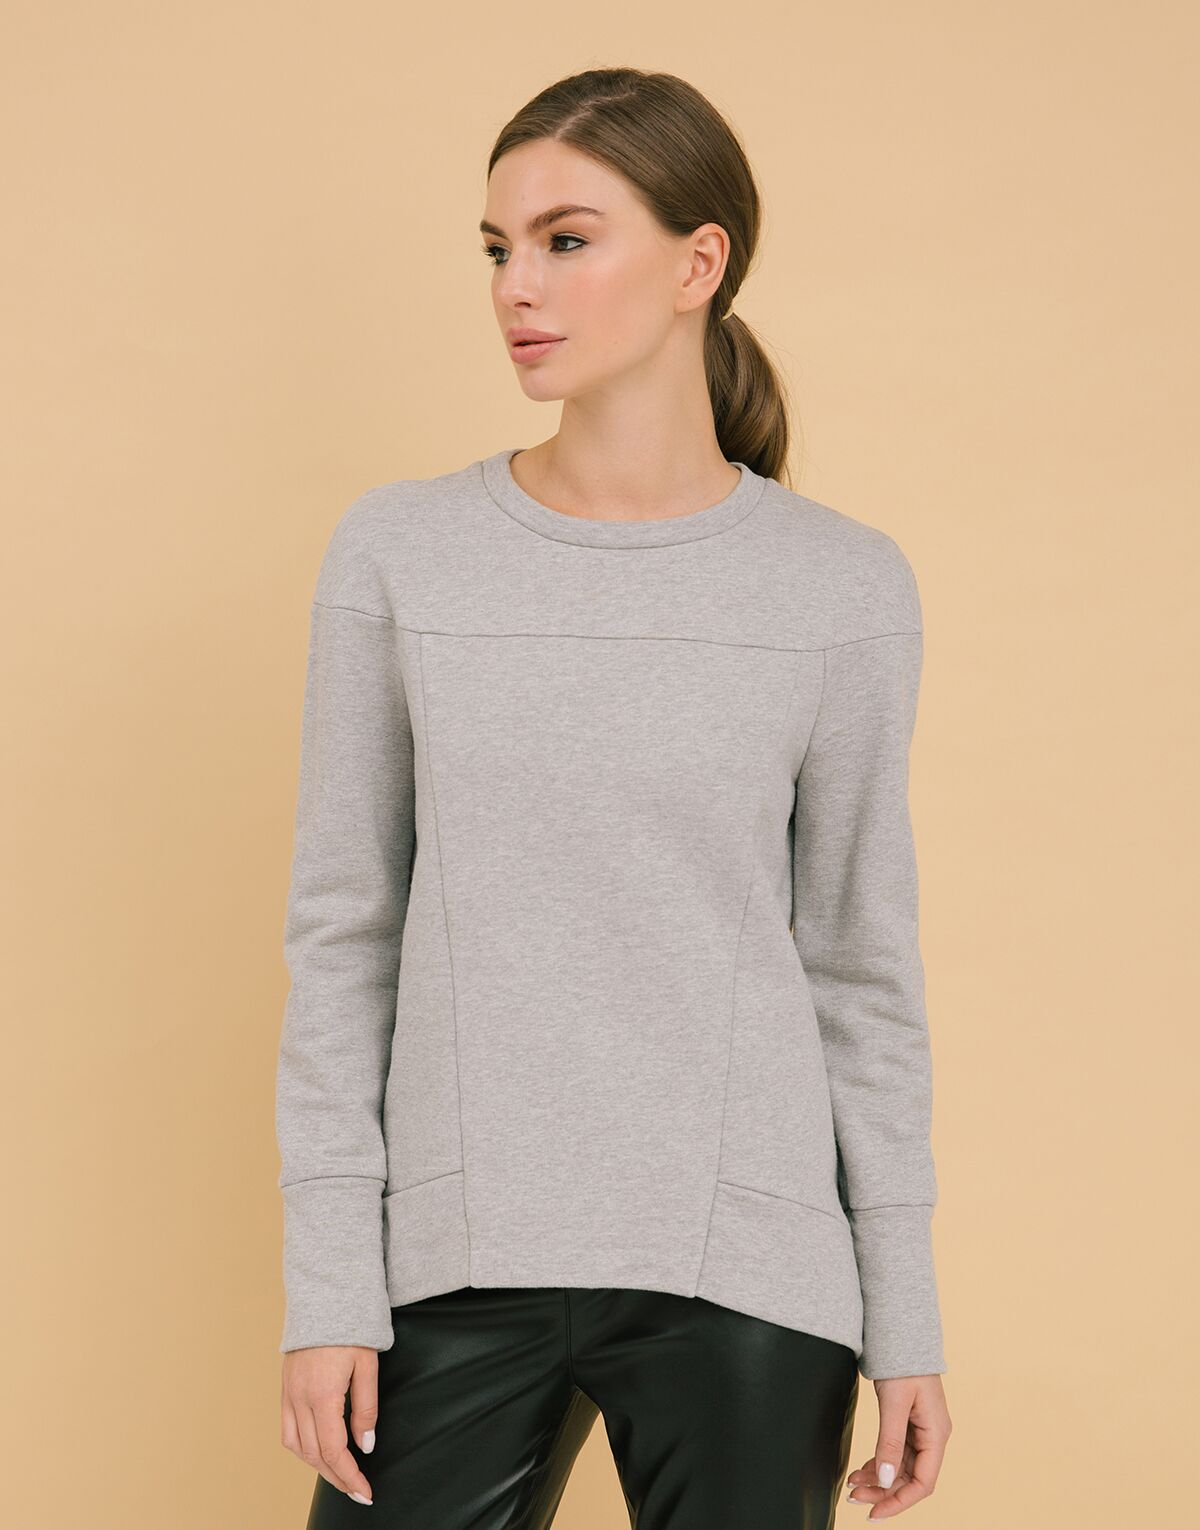 Sweatshirt, pattern №417